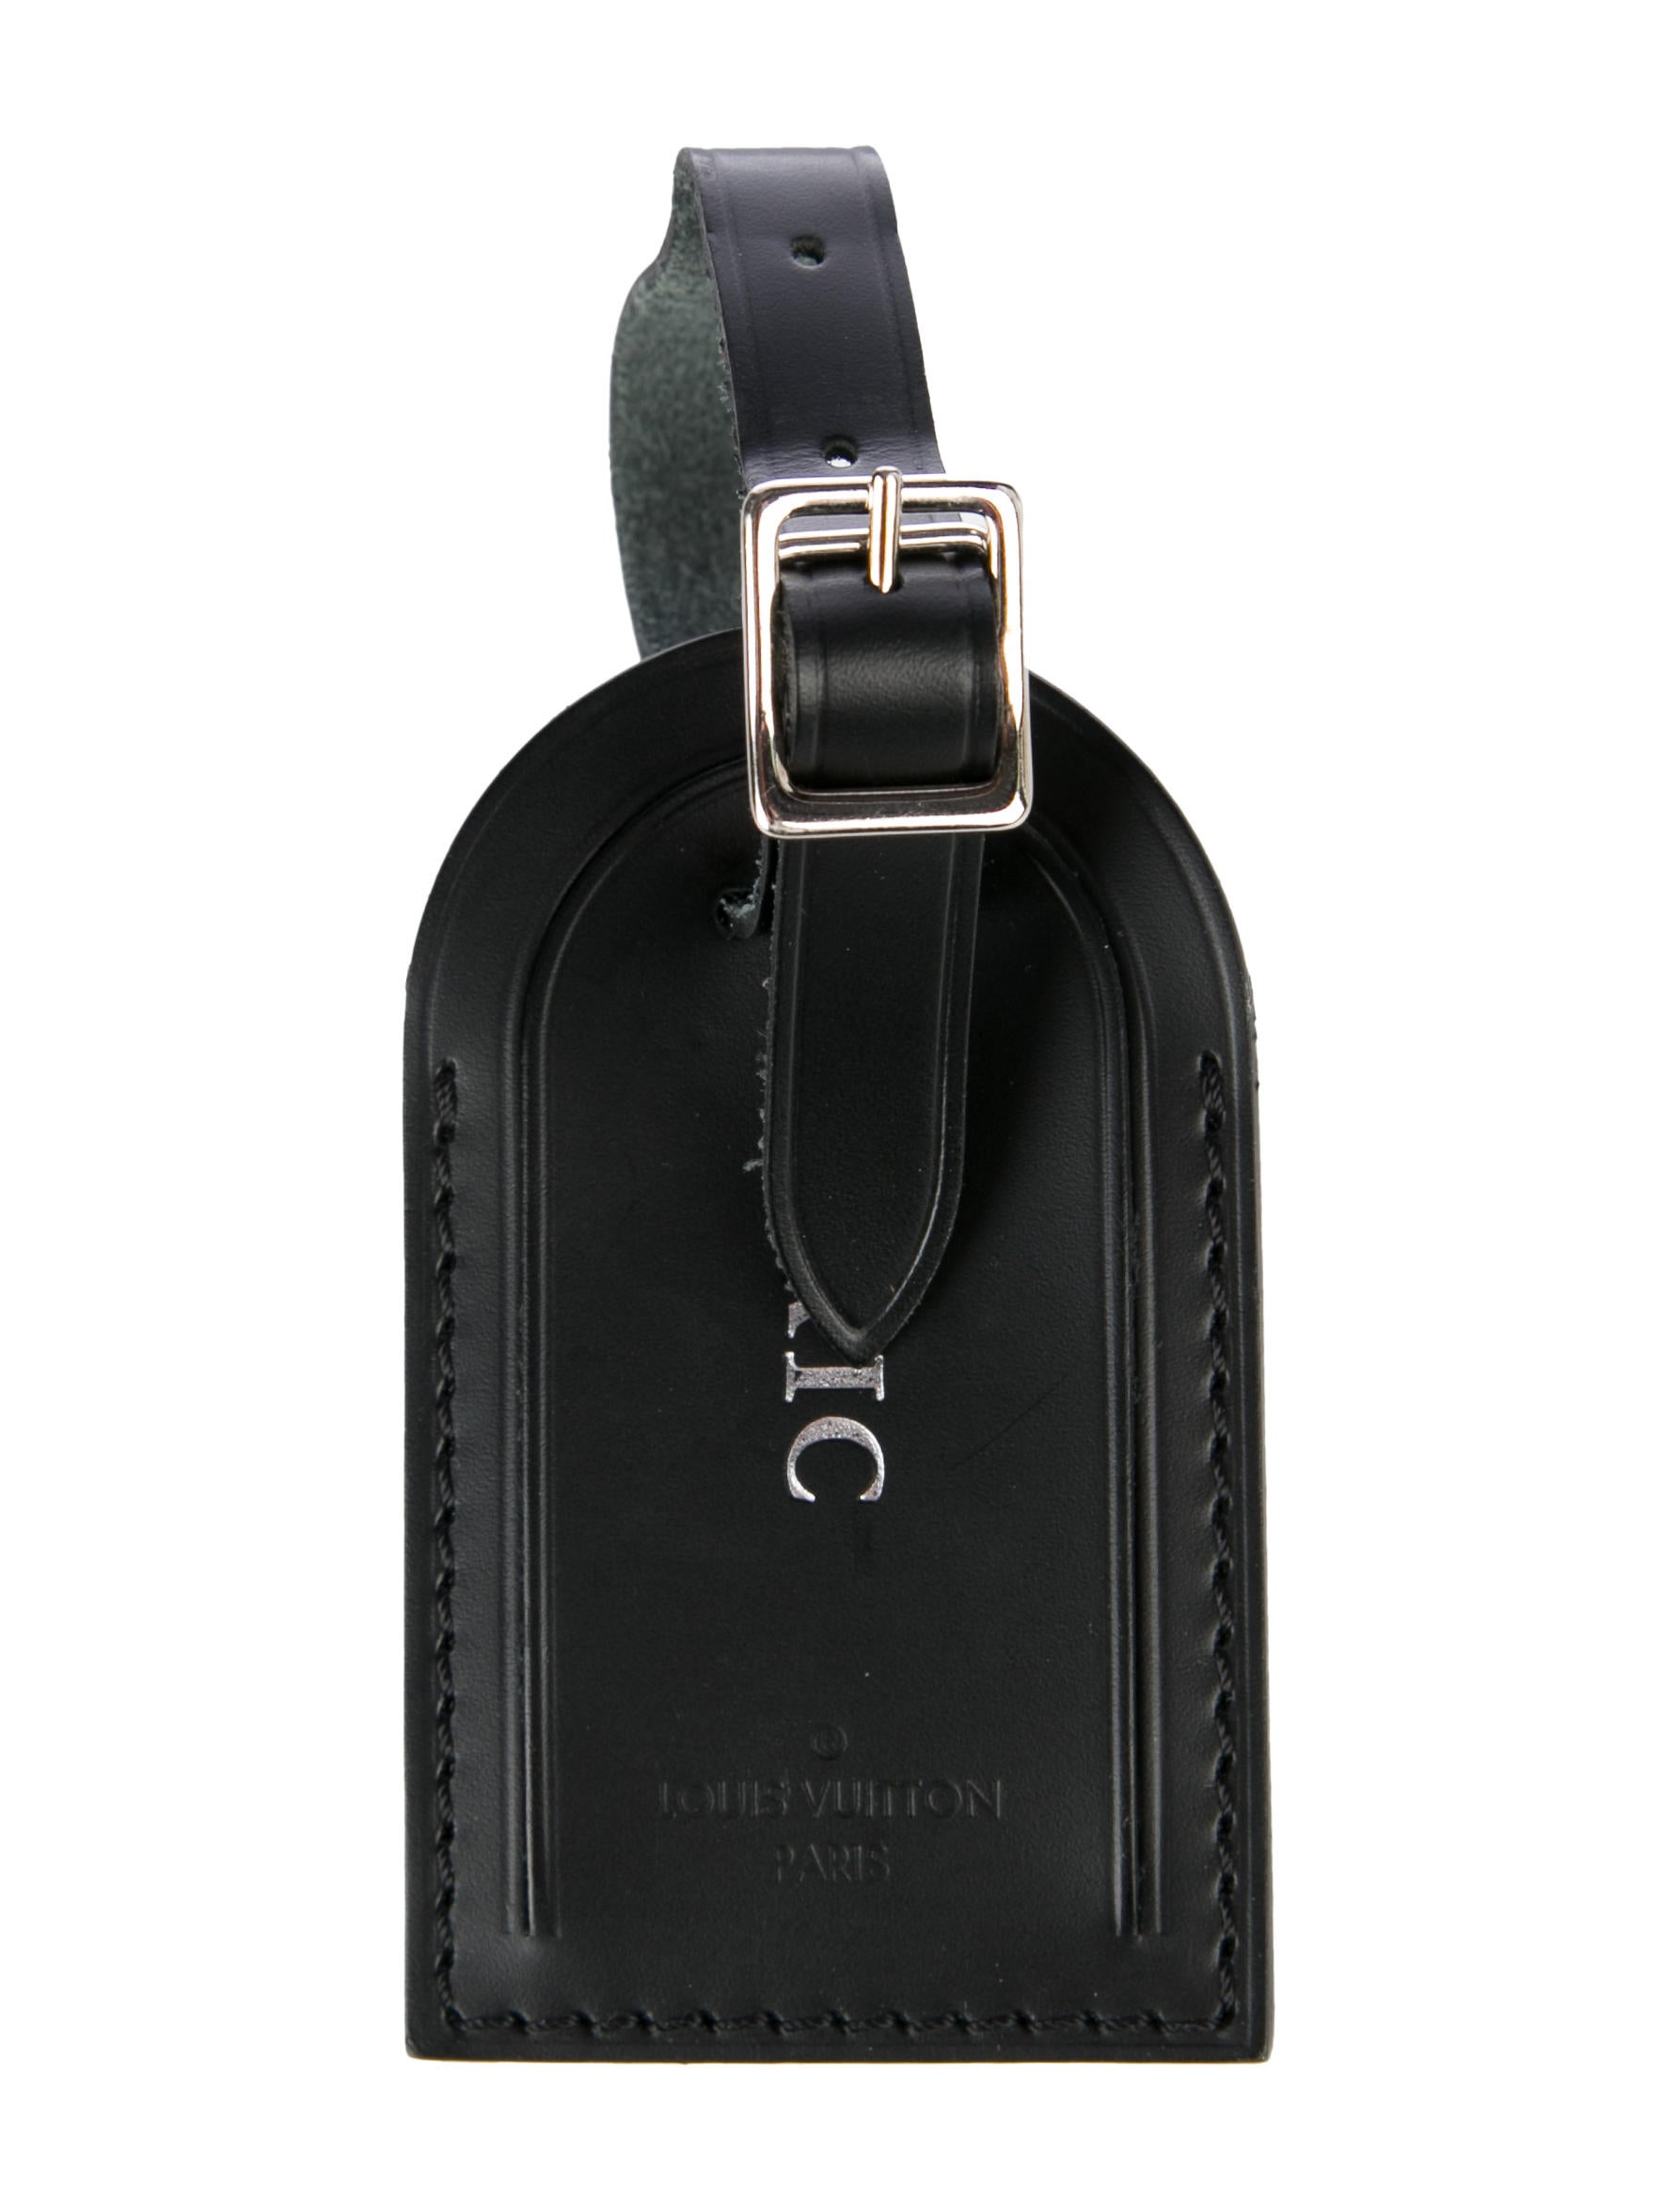 eb306b55ad89 Louis Vuitton Luggage Tag - Accessories - LOU206321